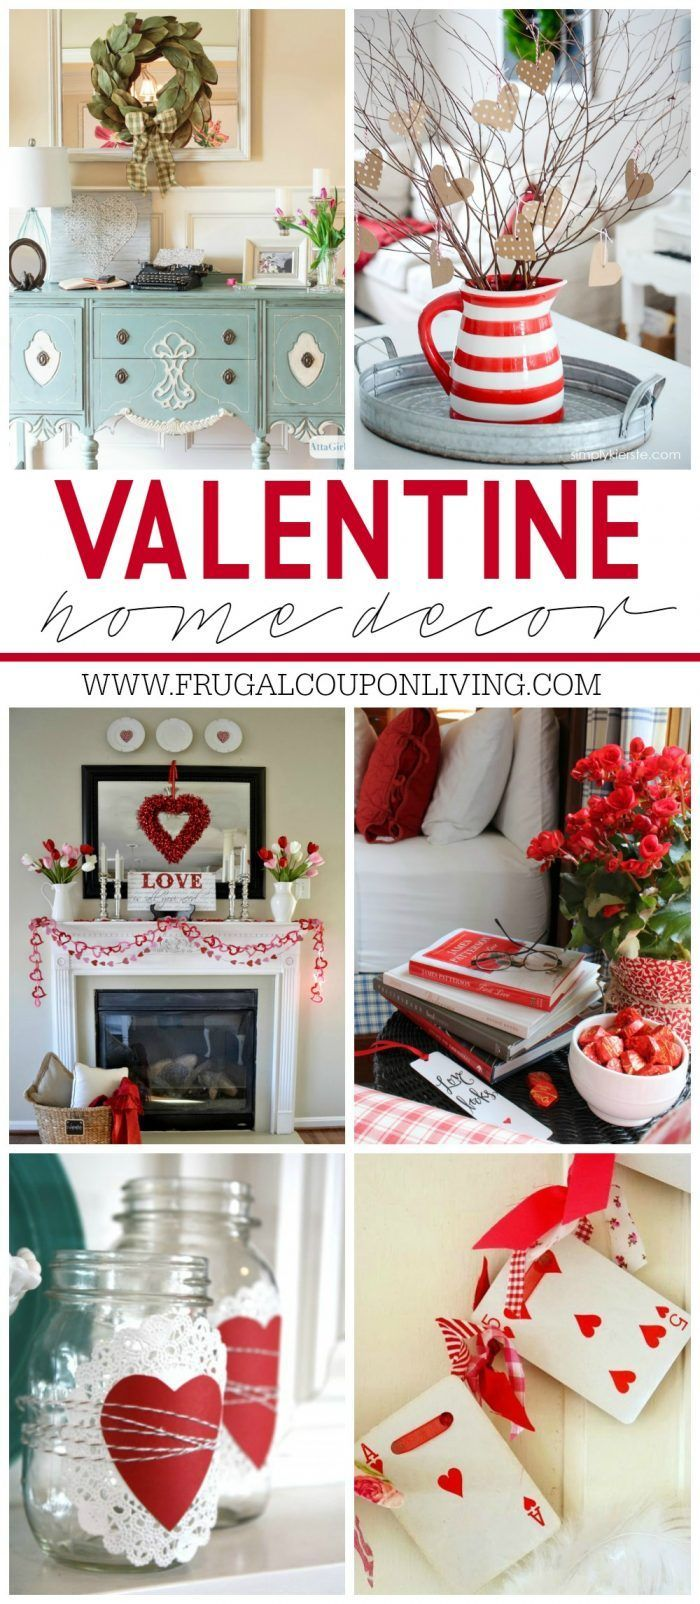 DIY Crafts - Valentine Home Decor Ideas on Frugal Coupon ... Free Printable Valentine's Day Decorations